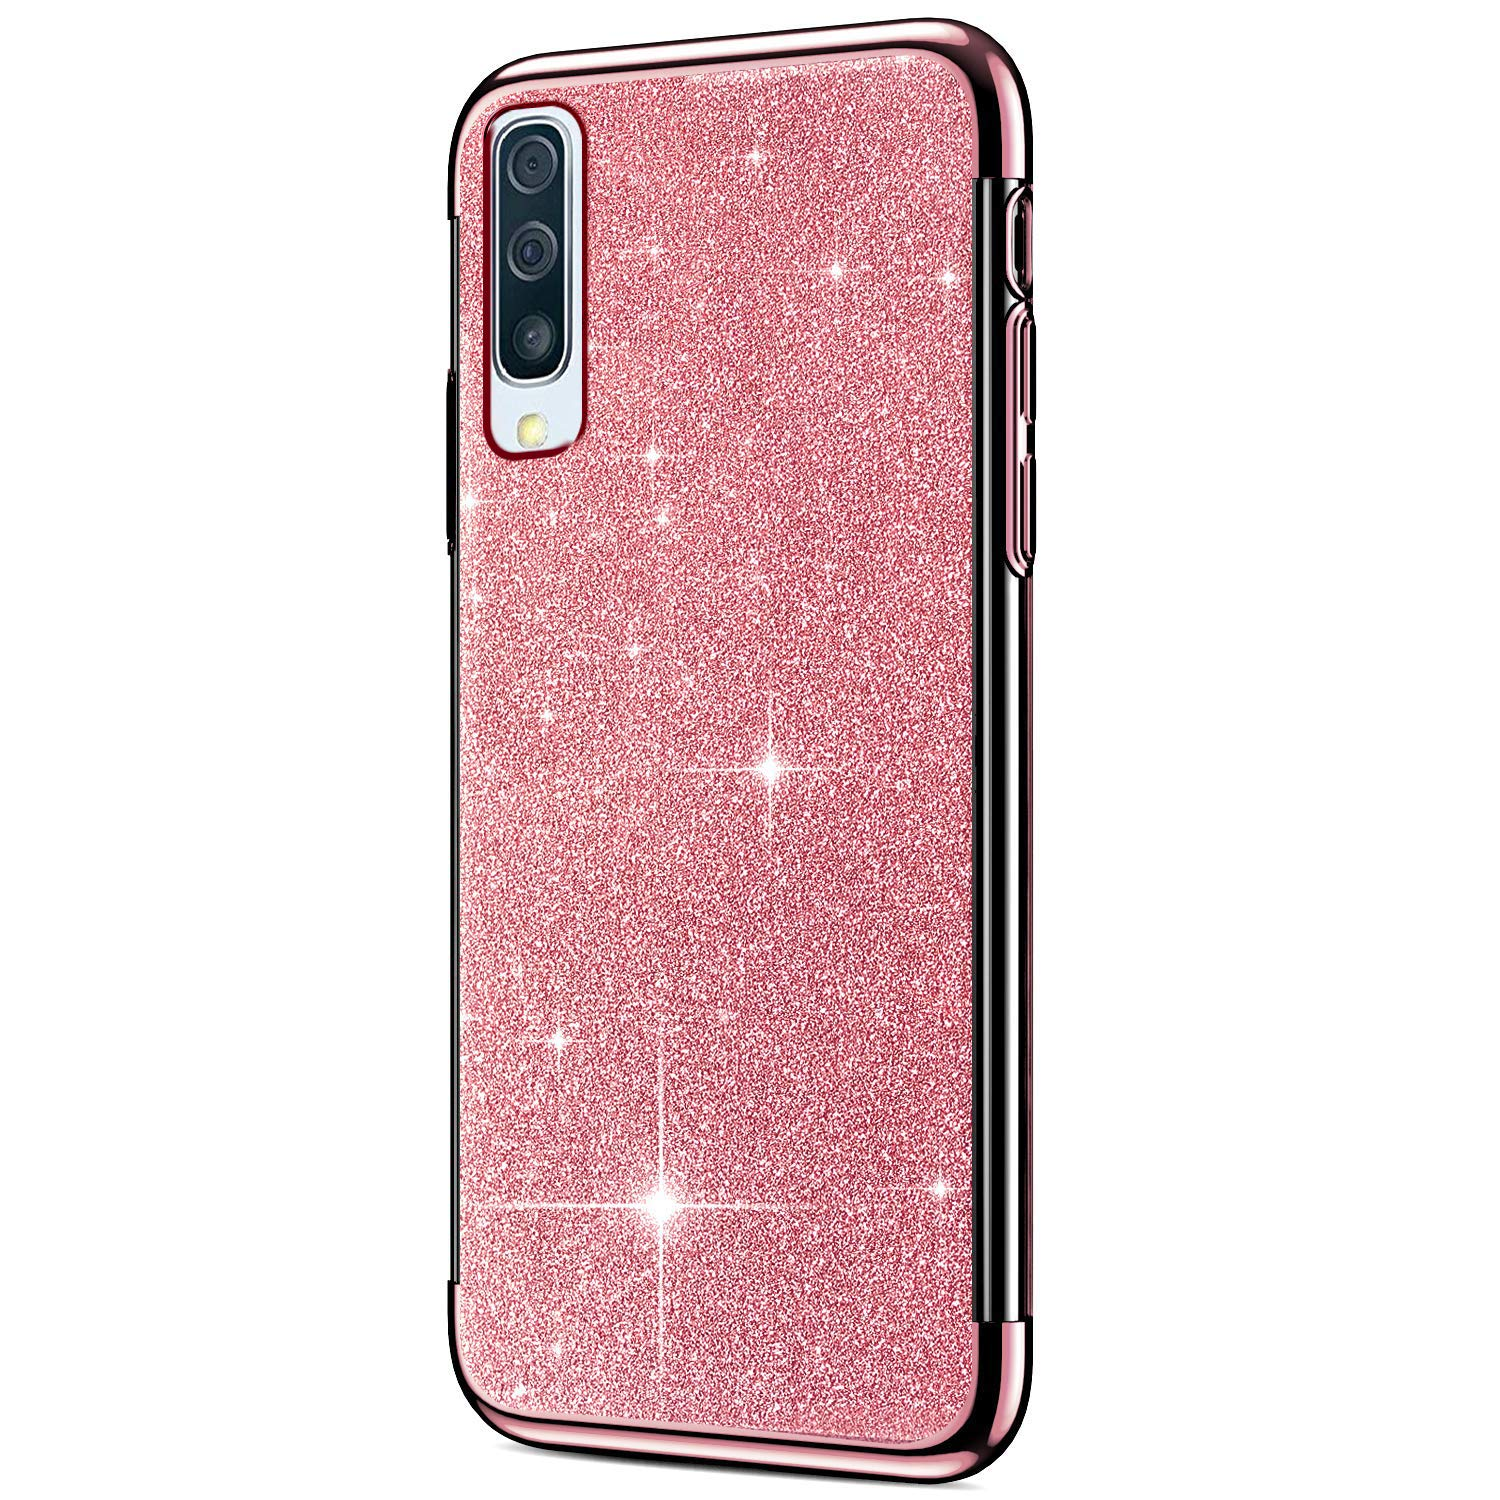 Bling Mirror Cover Hpory compatible avec Samsung Galaxy A50 Samsung Galaxy A50 rose gold